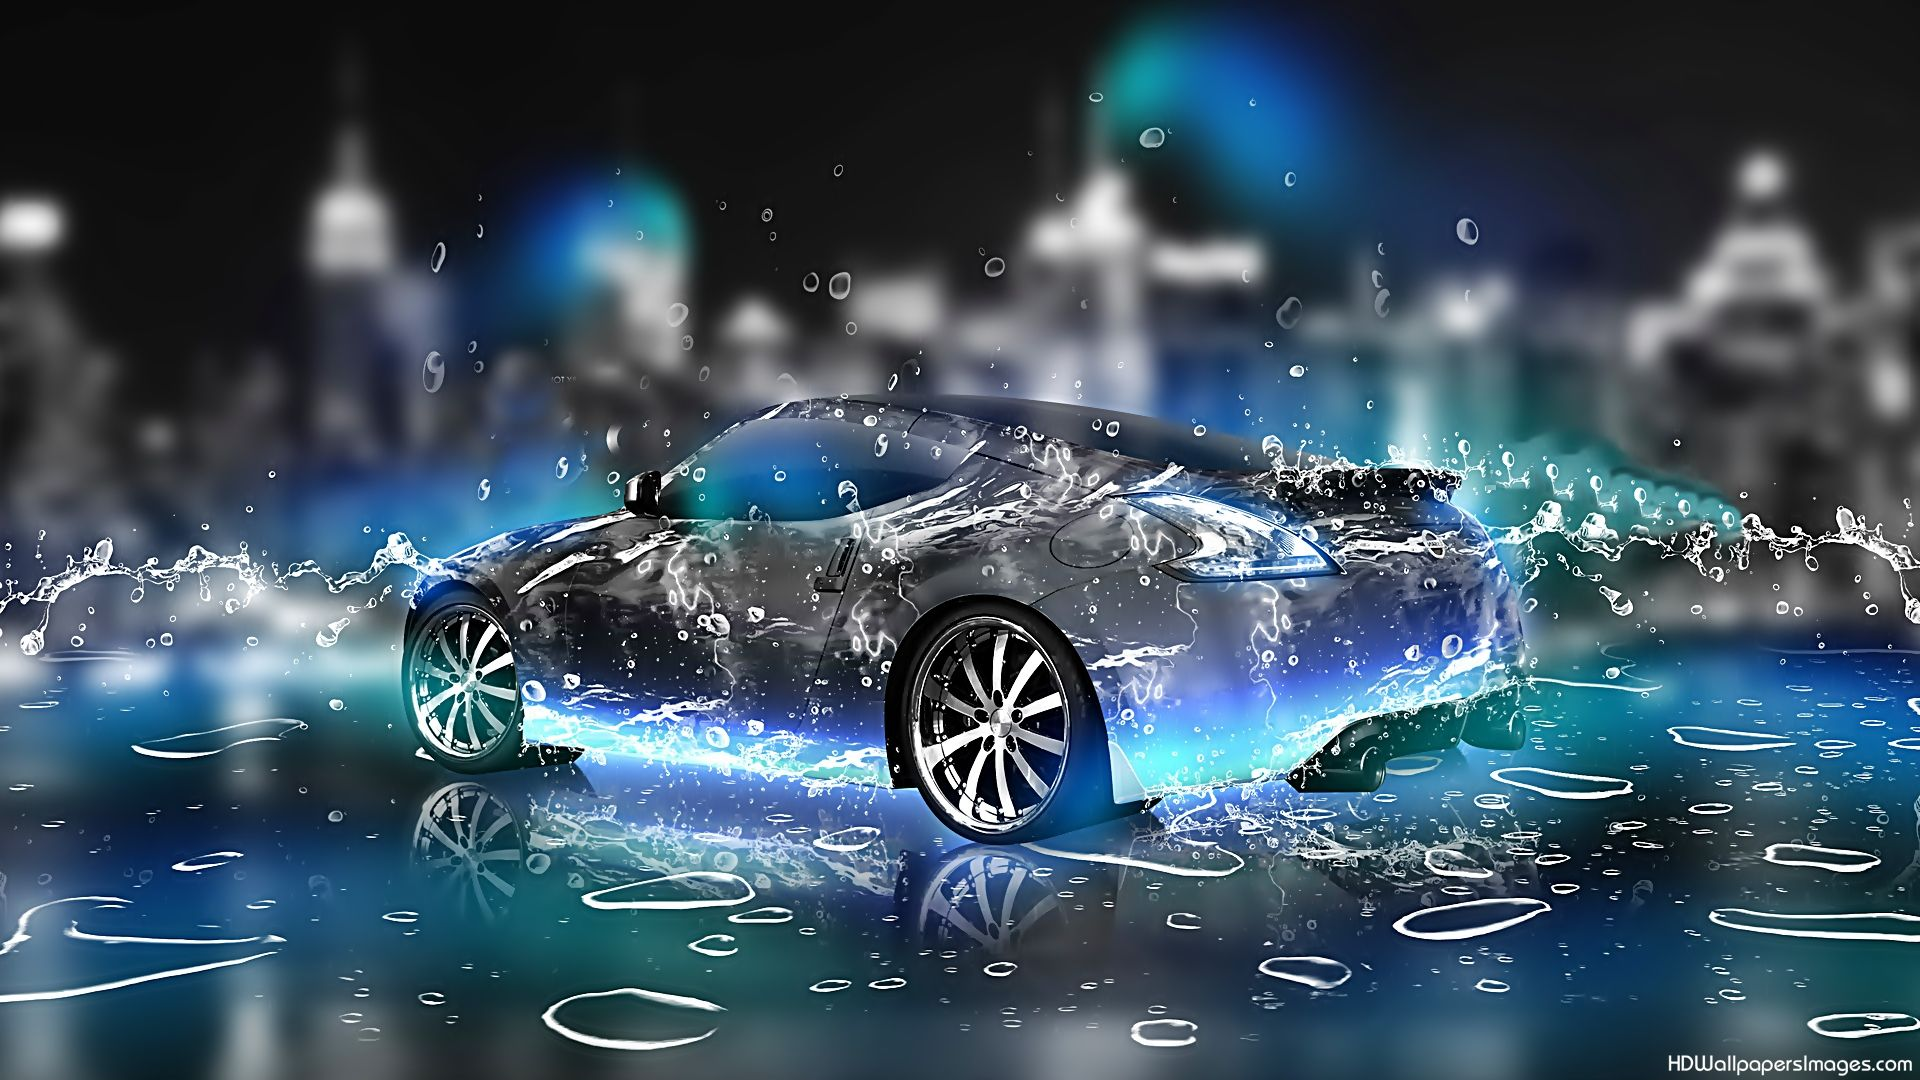 Sections show more follow today we're staring at our screens more than ever these da. New Car Hd Wallpaper For Laptop